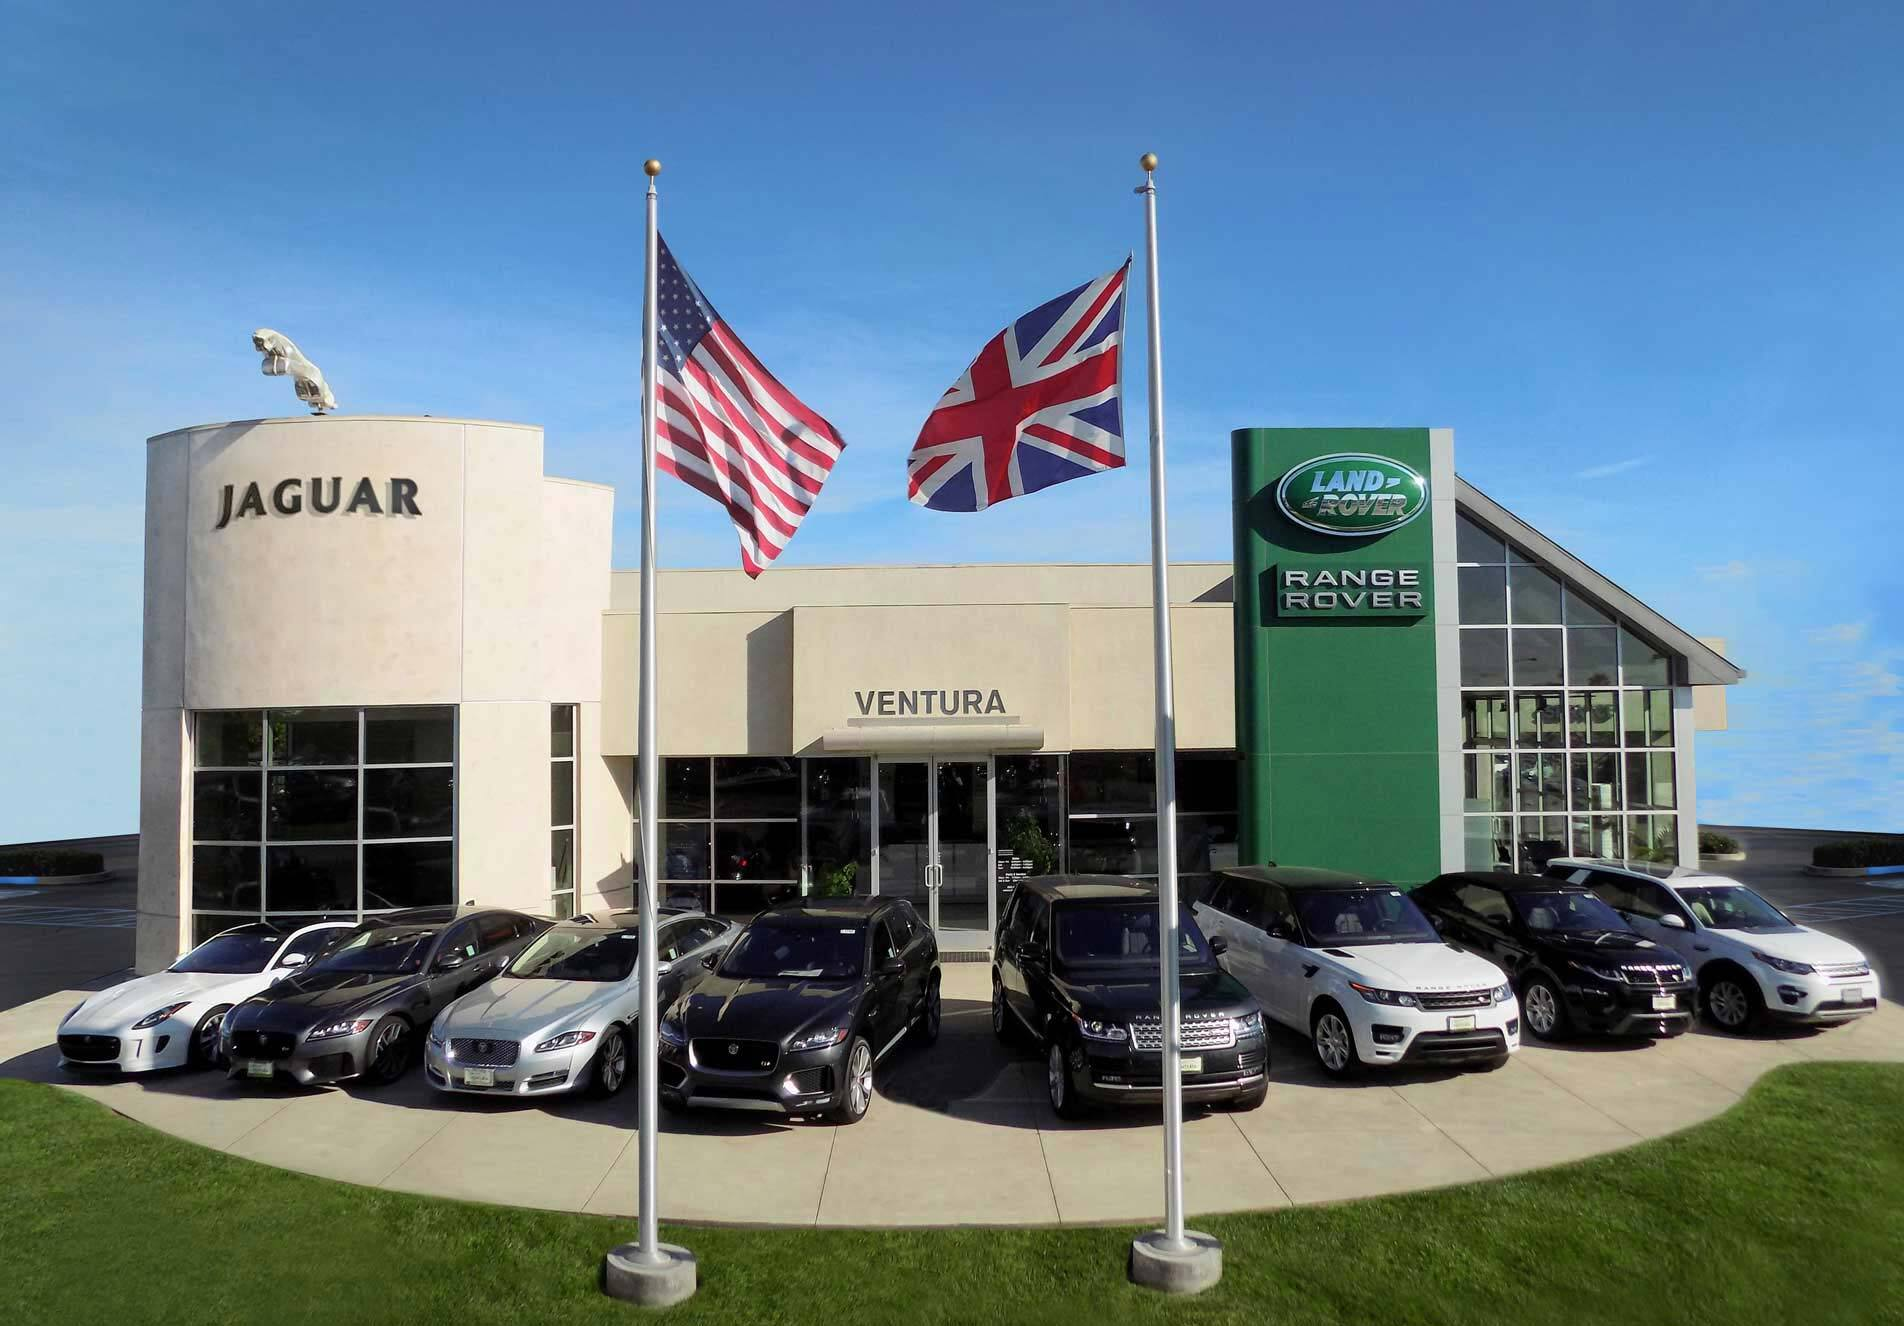 Land Rover Ventura Dealership